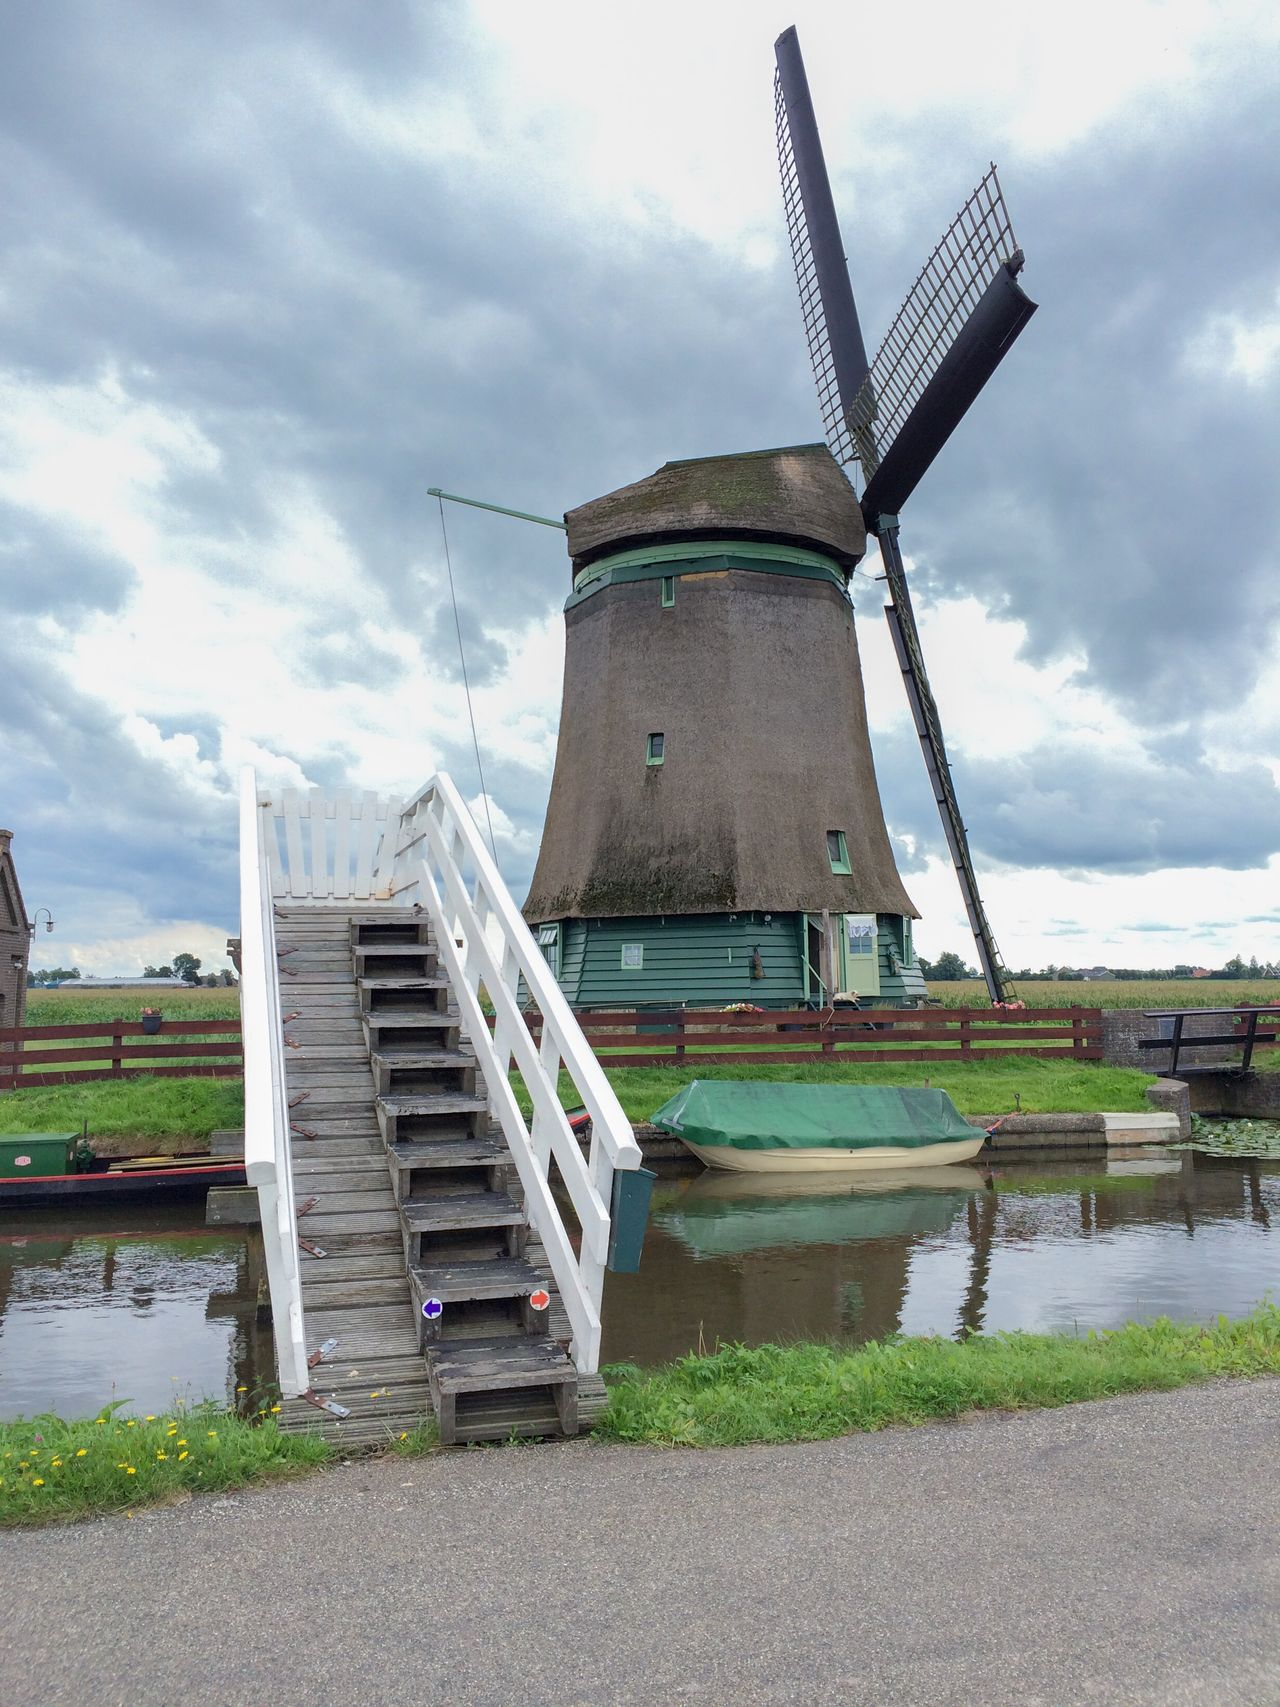 Traditionel windmill in Netherlands. Alternative Energy Architecture Boat, Fishing Boat, Paddle, Row, Row Boat, Vessel, Water Craft Ship, Cloud - Sky Day Holland Landscape, Seascape, Peggy's Cove, Peaceful Netherlands Opmeer Outdoors Renewable Energy Traditional Windmill Water Wind Power Windmill